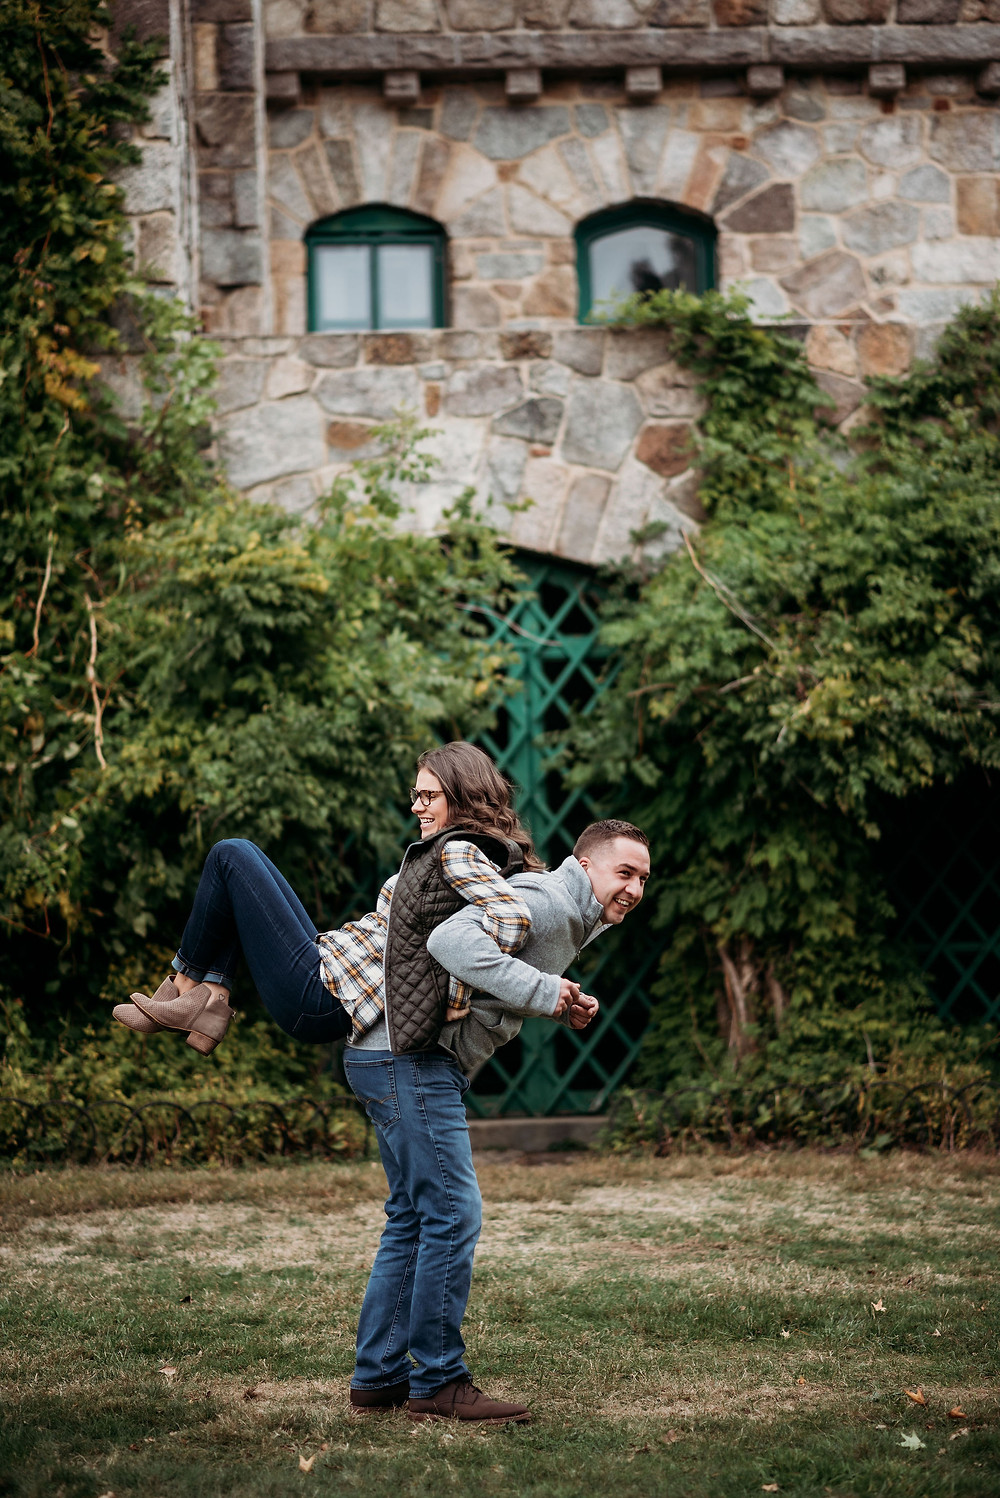 a couple is back to back with their arms interlocked. the guy is bent forward, with the girl's feet off the ground leaning on the guy